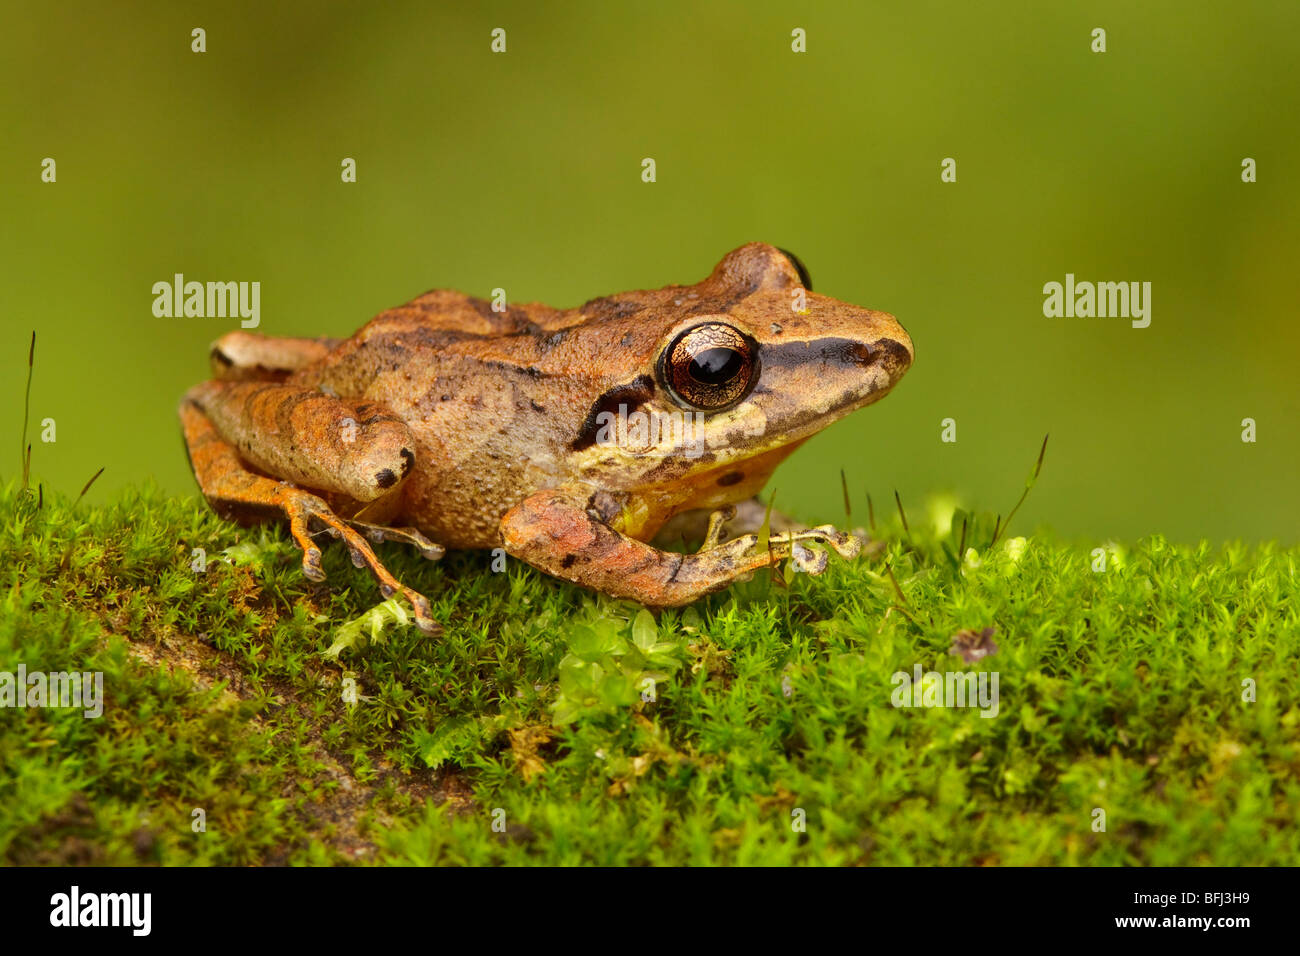 A treefrog perched on a mossy rock in the Tandayapa Valley of Ecuador. - Stock Image